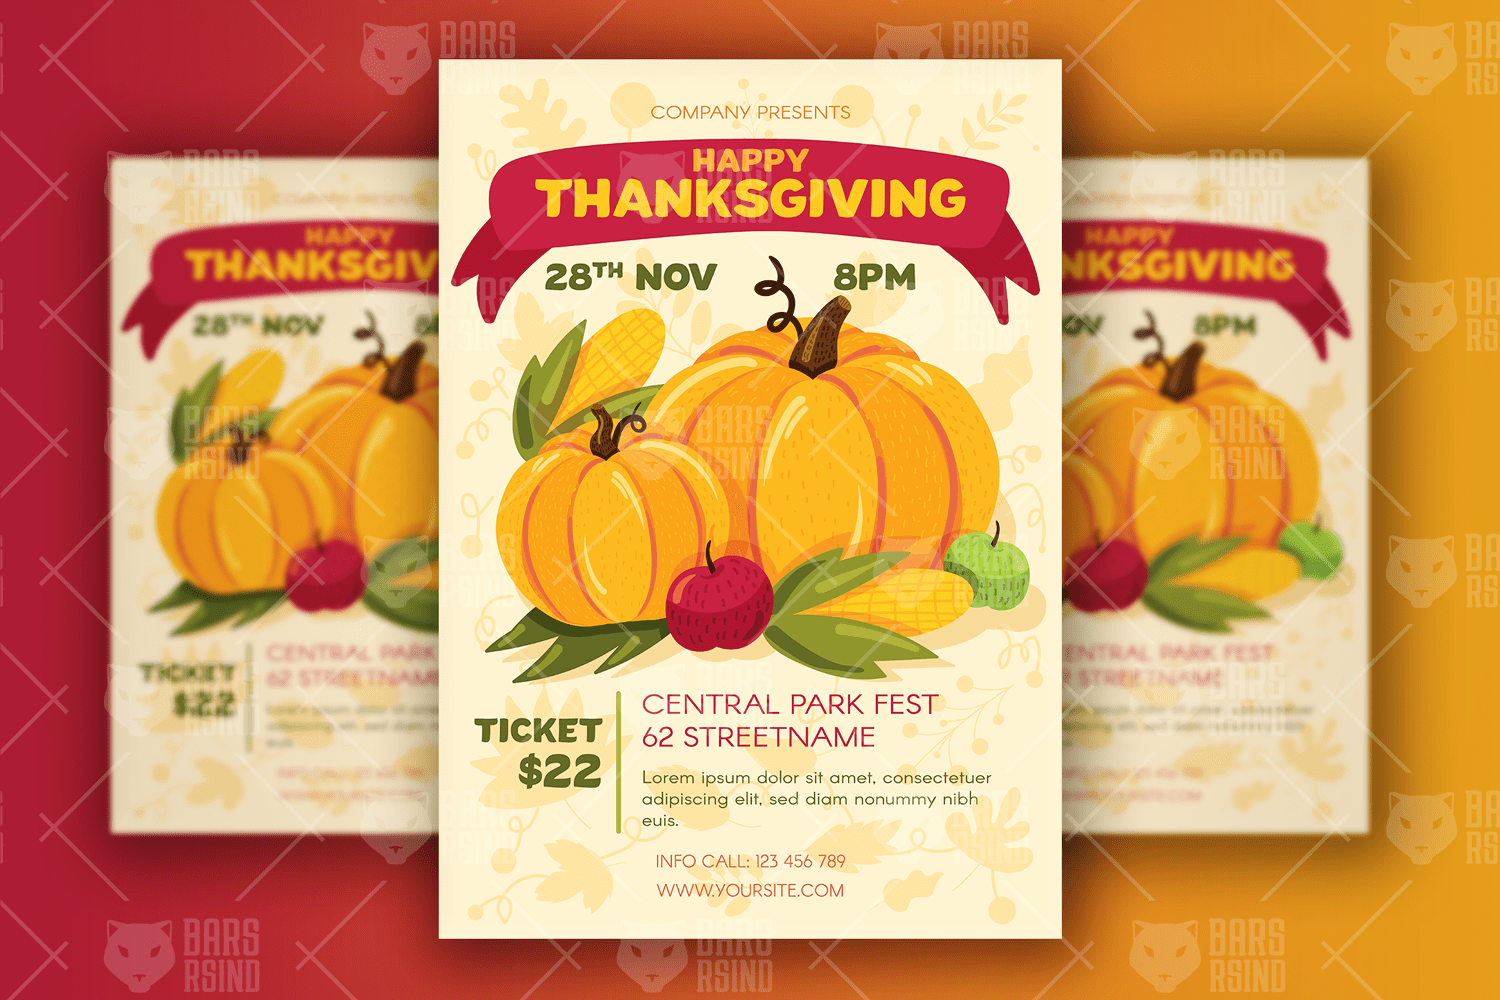 Thanksgiving Poster With Pumpkins Design Creative Flyer Template